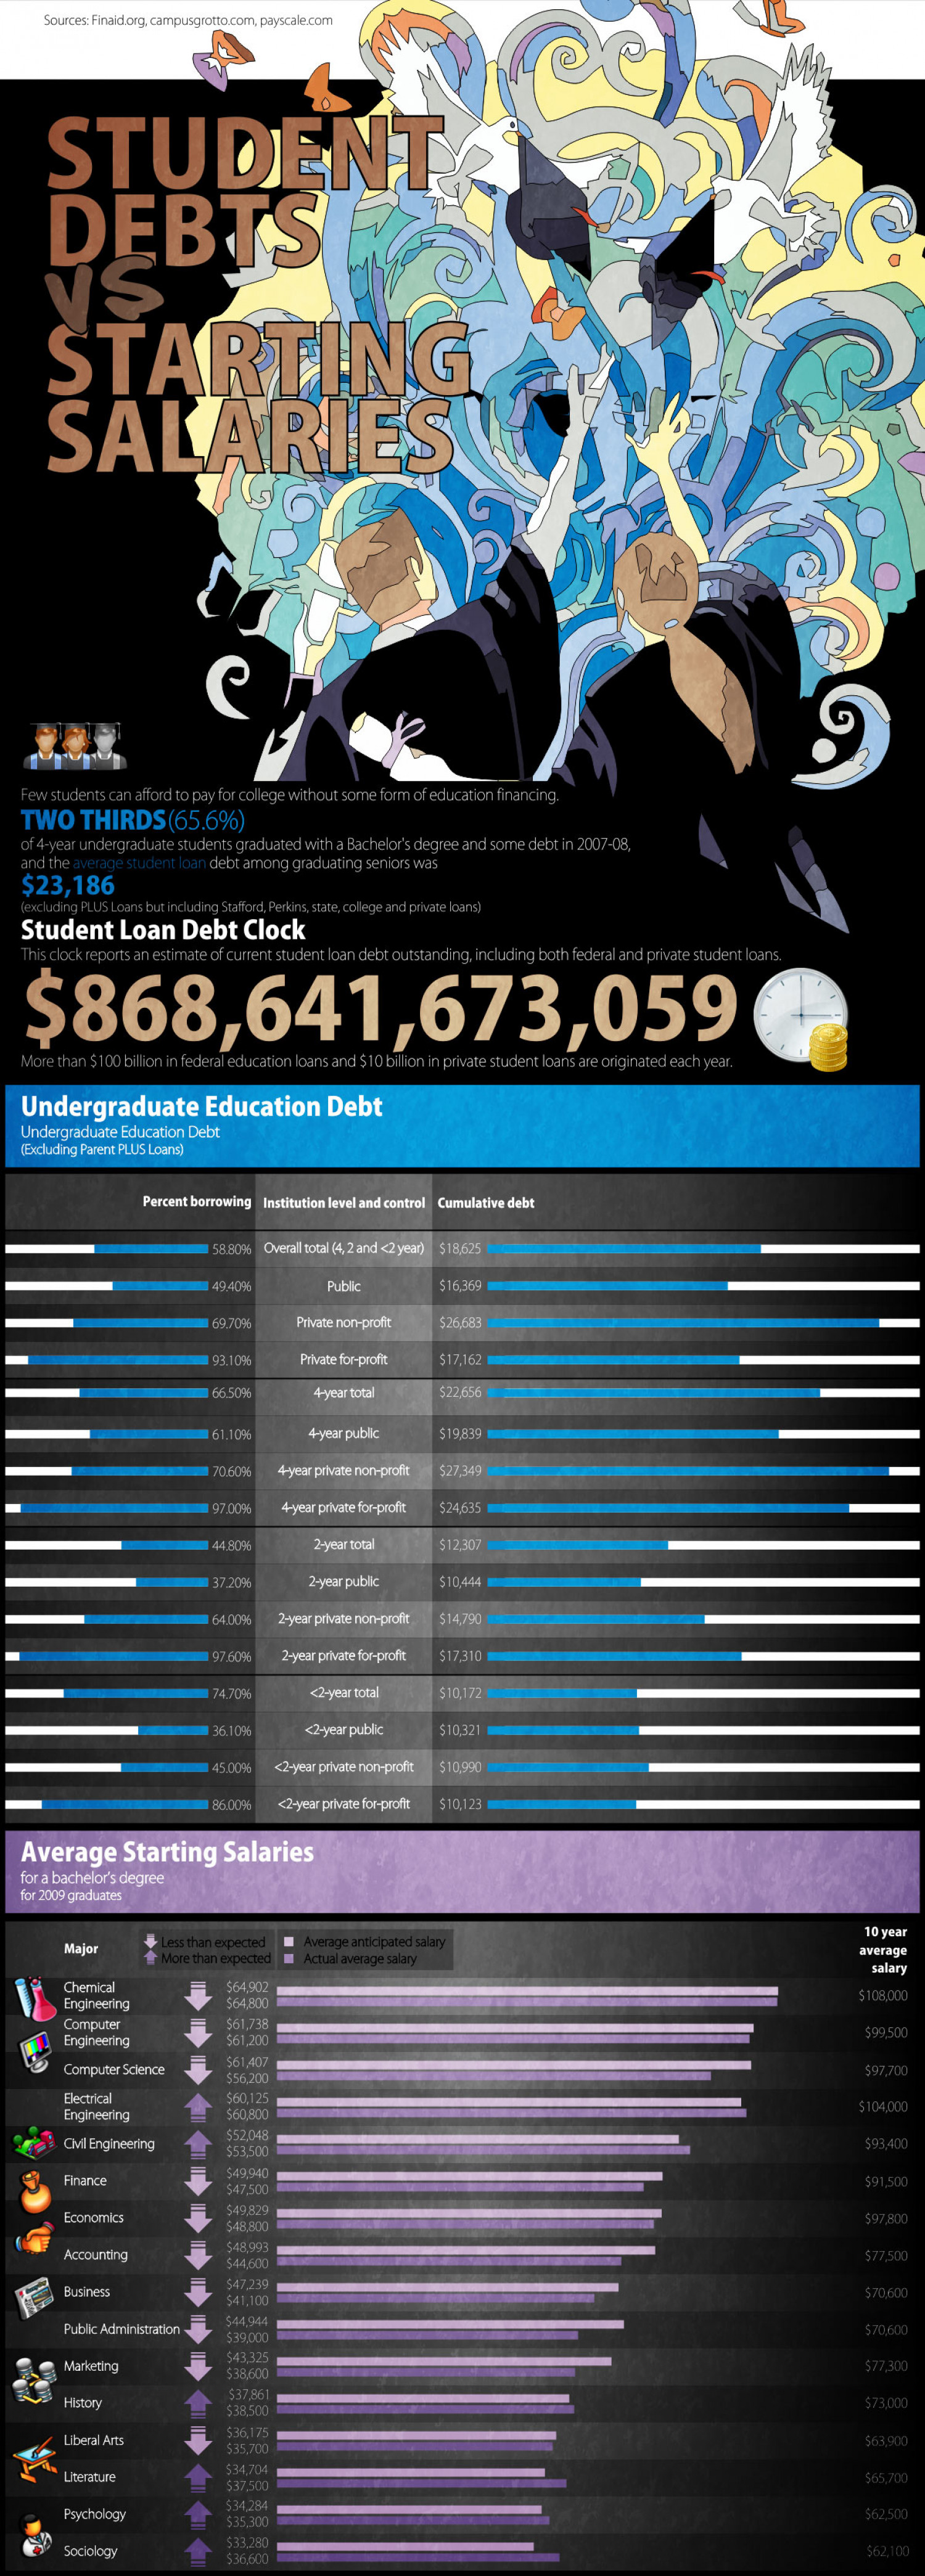 Student Debts vs Starting Salaries Infographic